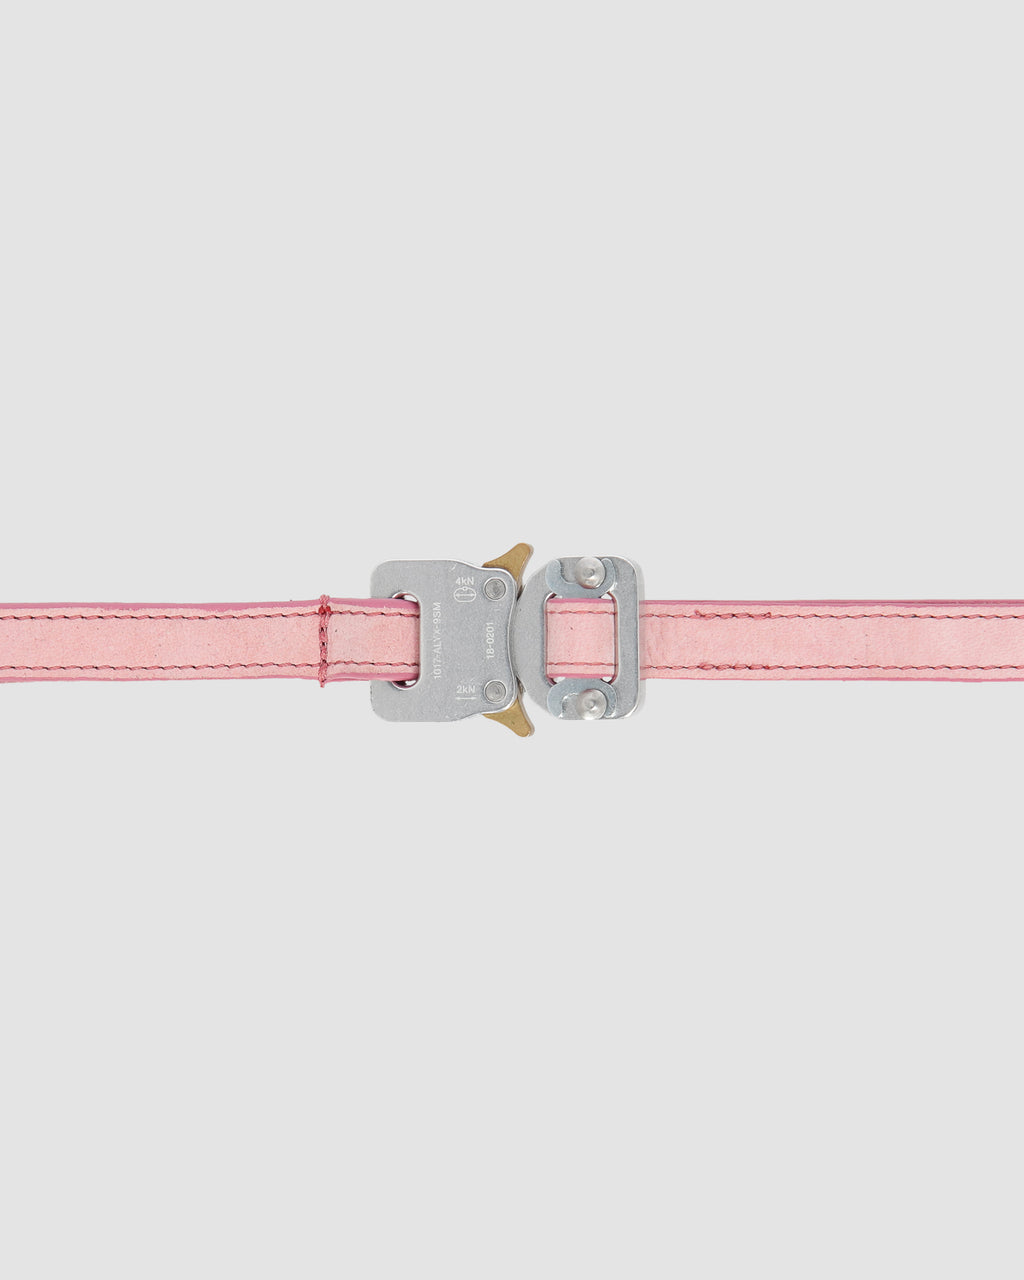 SMALL ROLLERCOASTER BELT